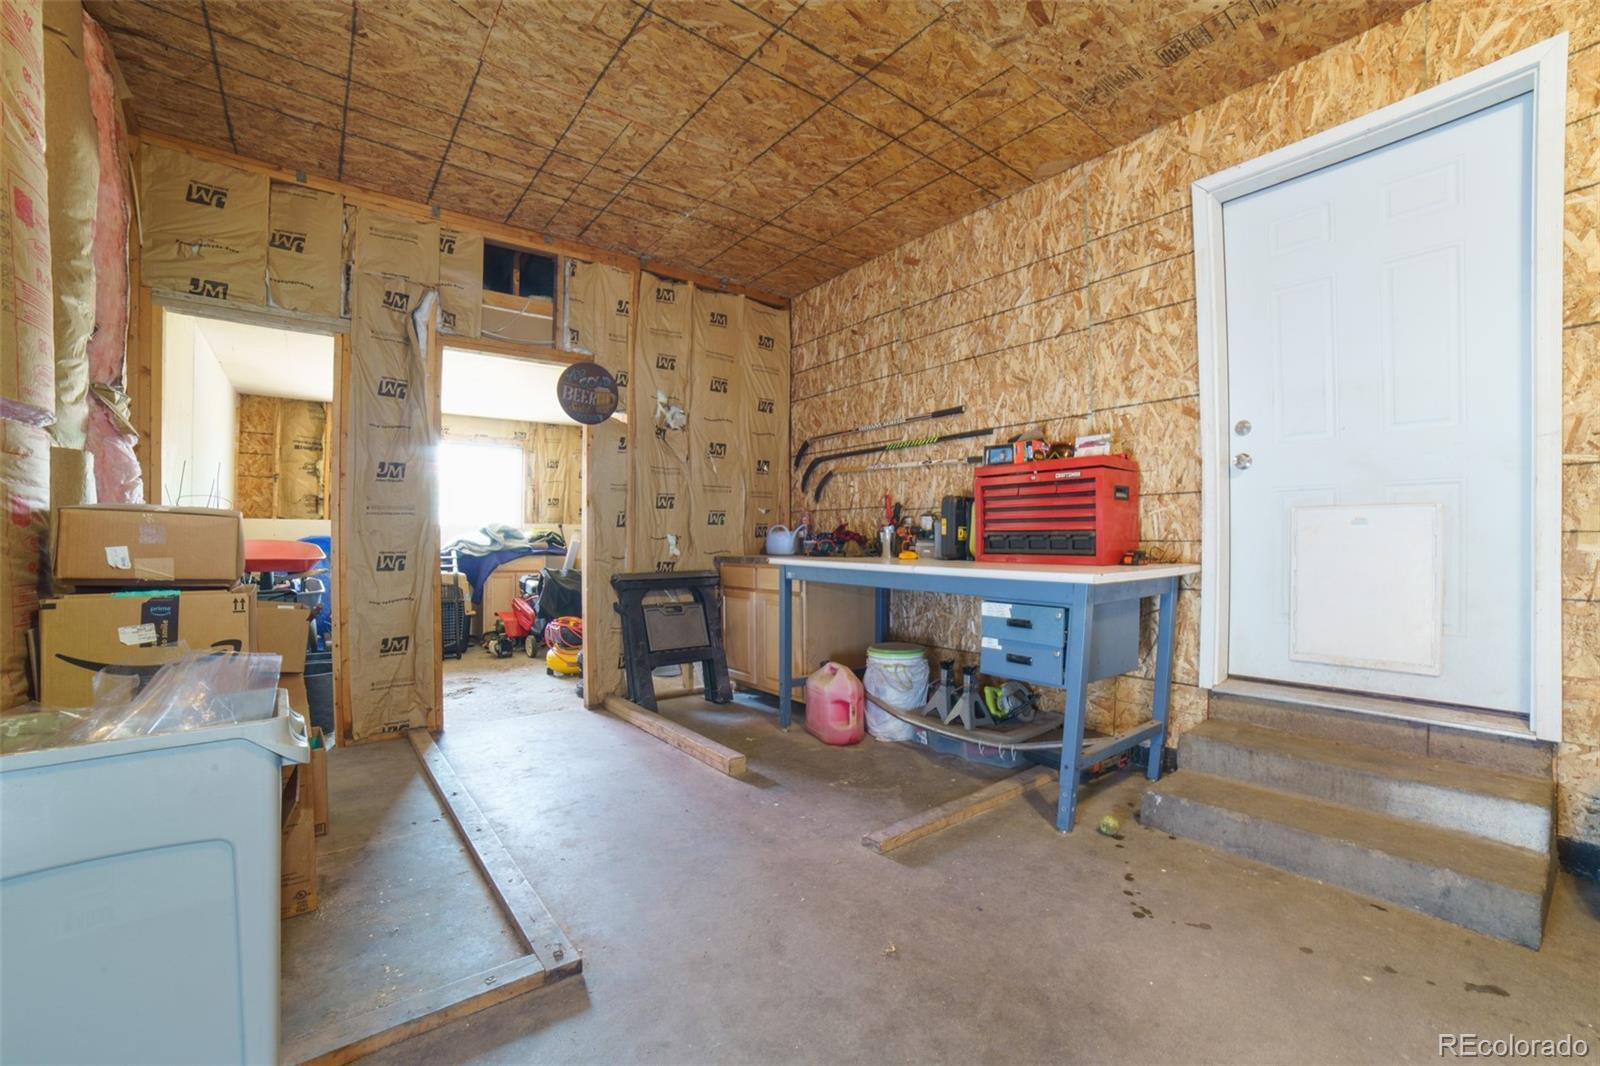 MLS# 7364059 - 23 - 1114 Pacific Way, Fort Lupton, CO 80621